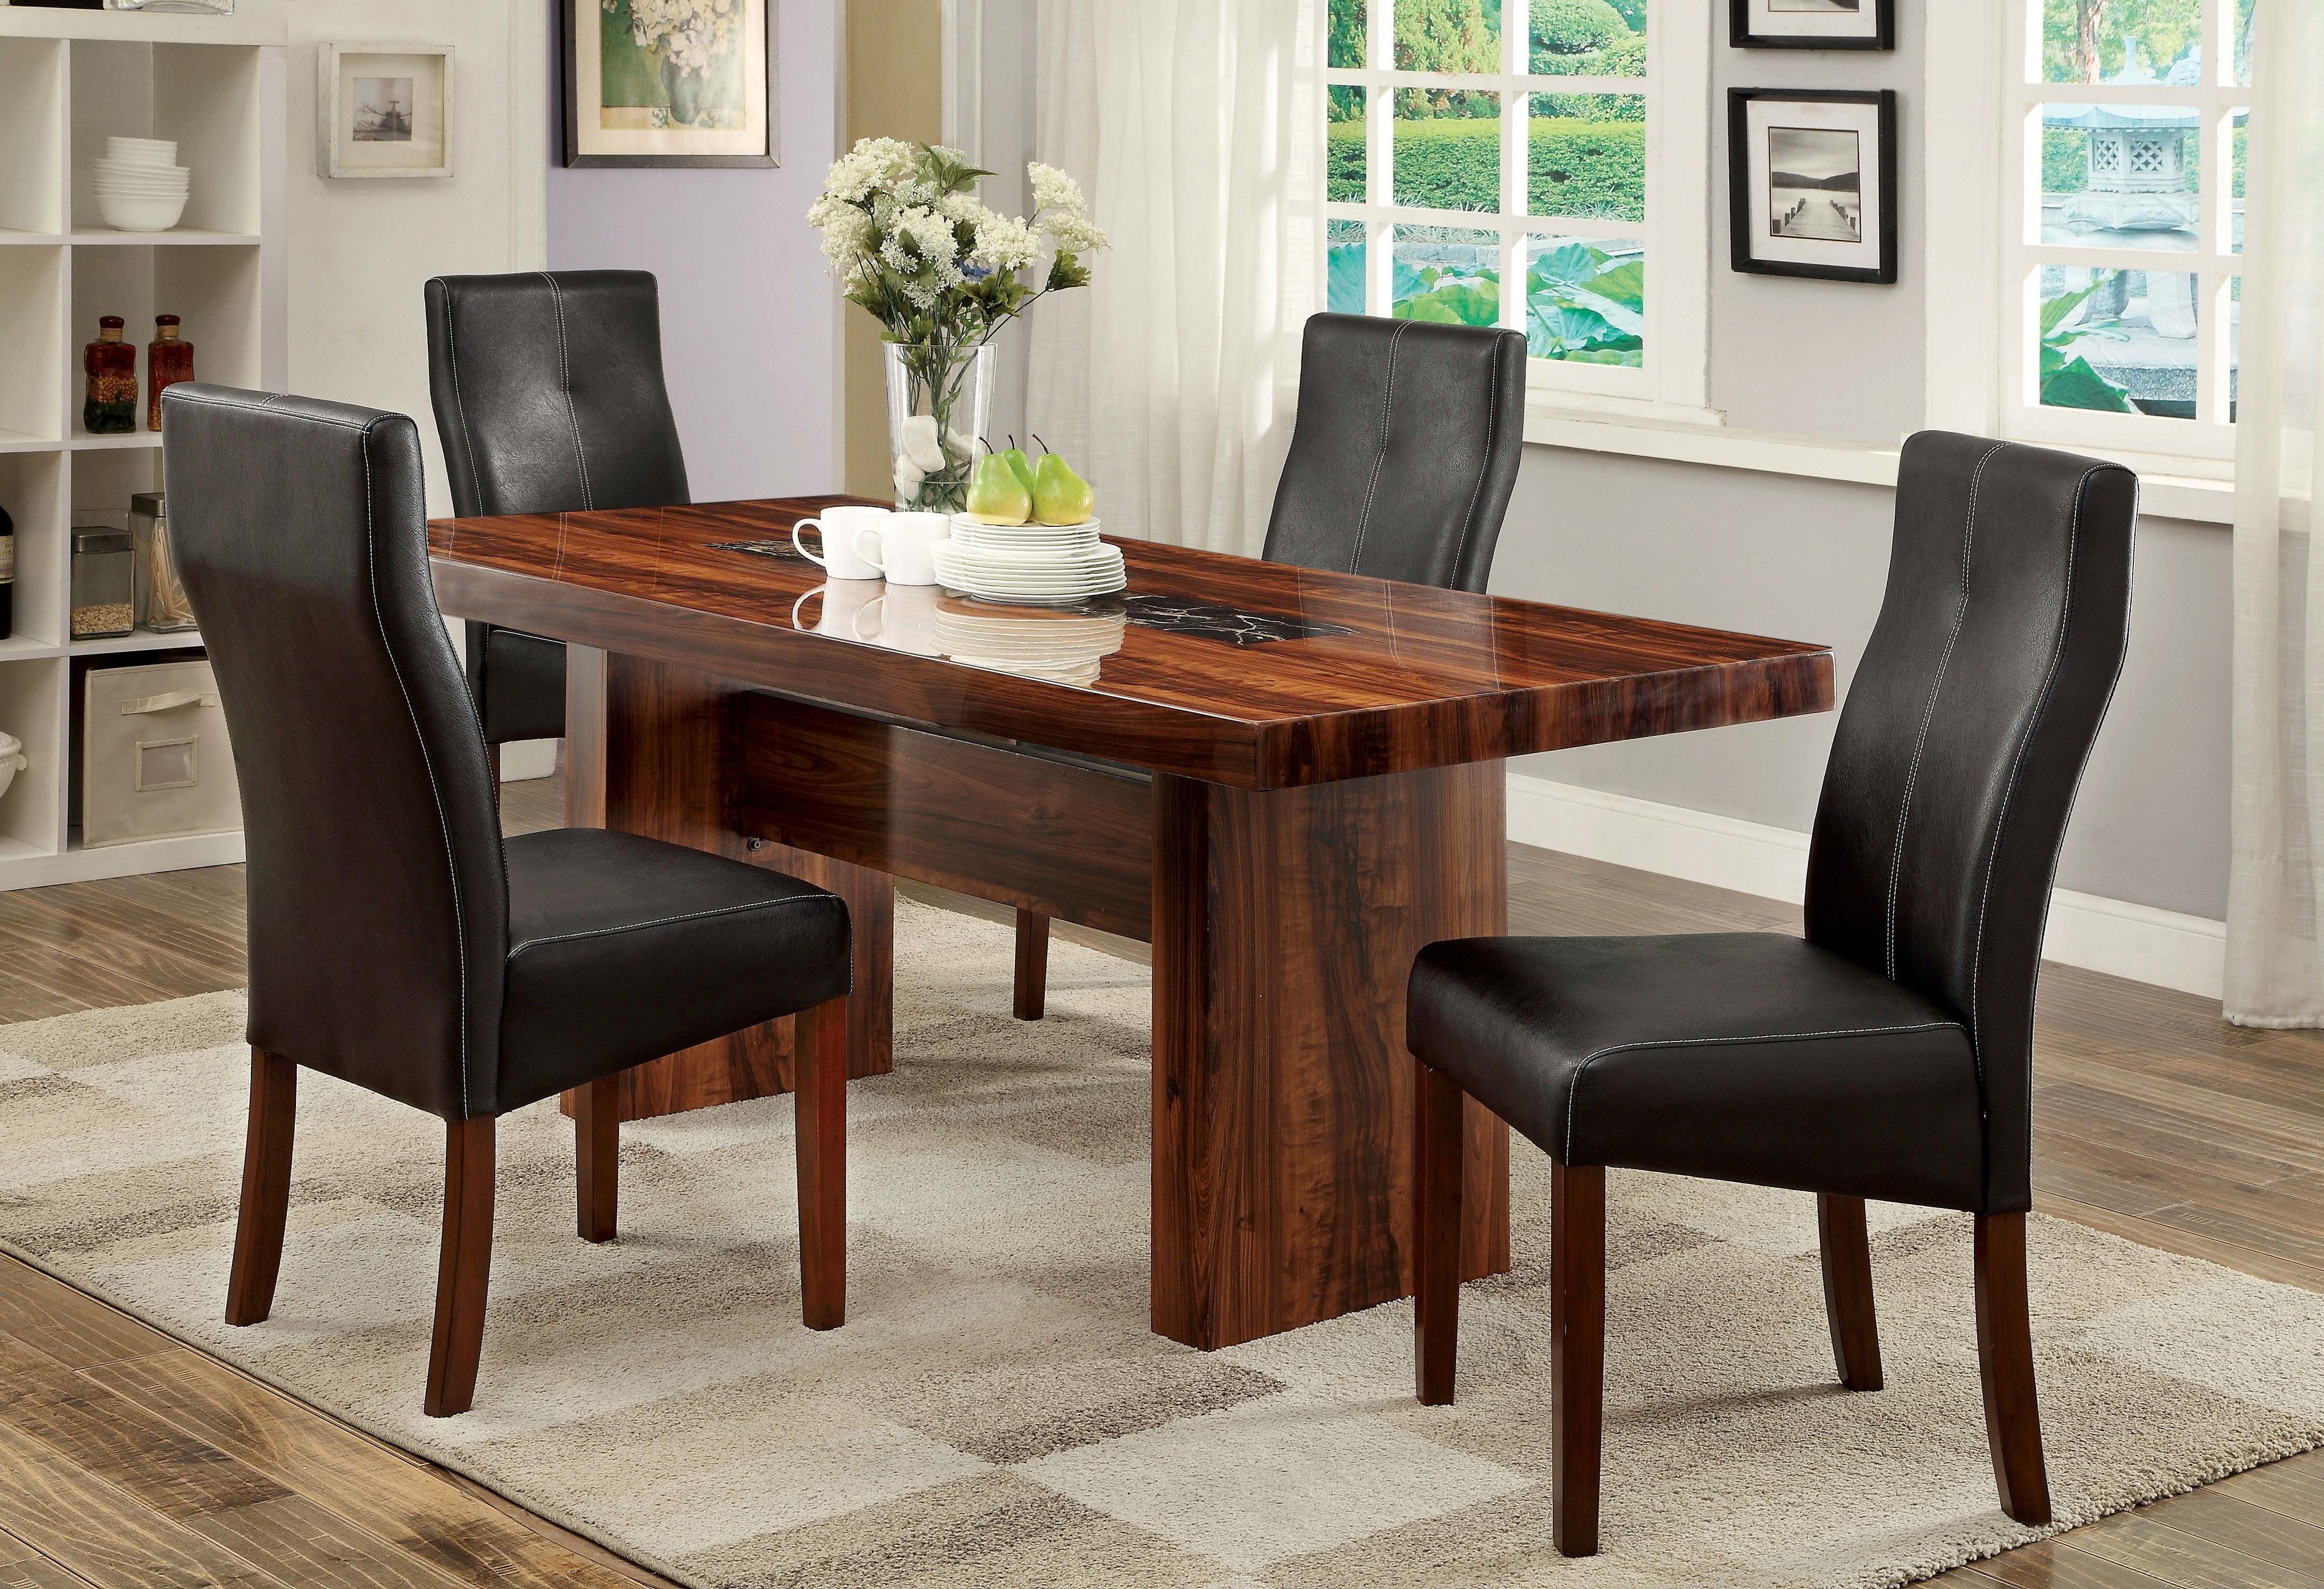 Hokku Designs Carroll 5 Piece Dining Set | Wayfair With Regard To Most Popular Walden 7 Piece Extension Dining Sets (Image 5 of 20)